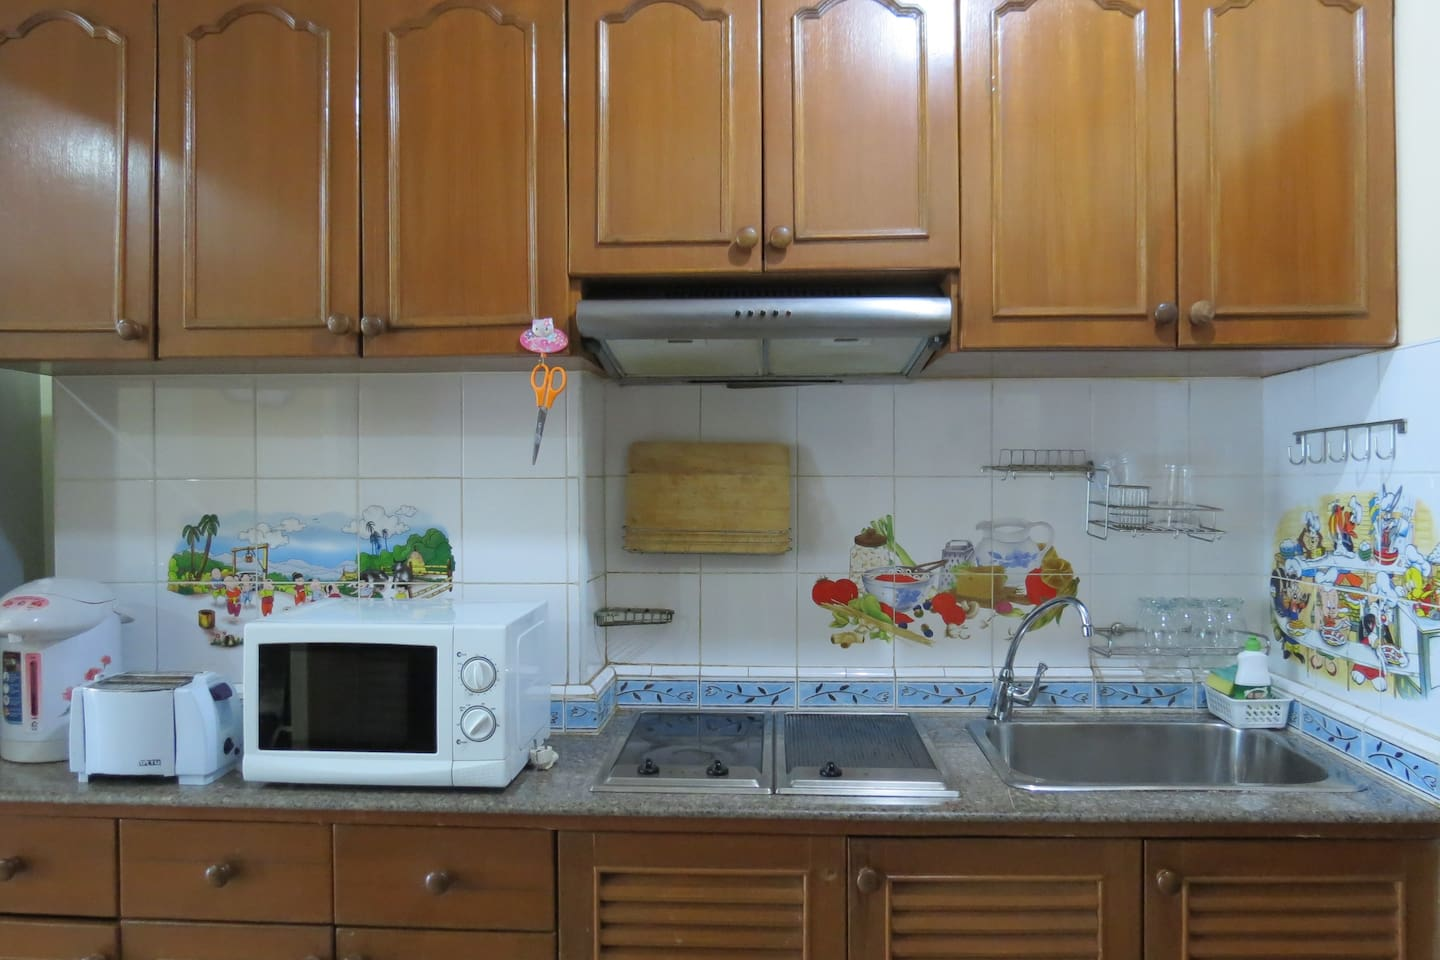 2 bedrooms - FREE WiFi/Electric/Cleaning everyday - Serviced ...